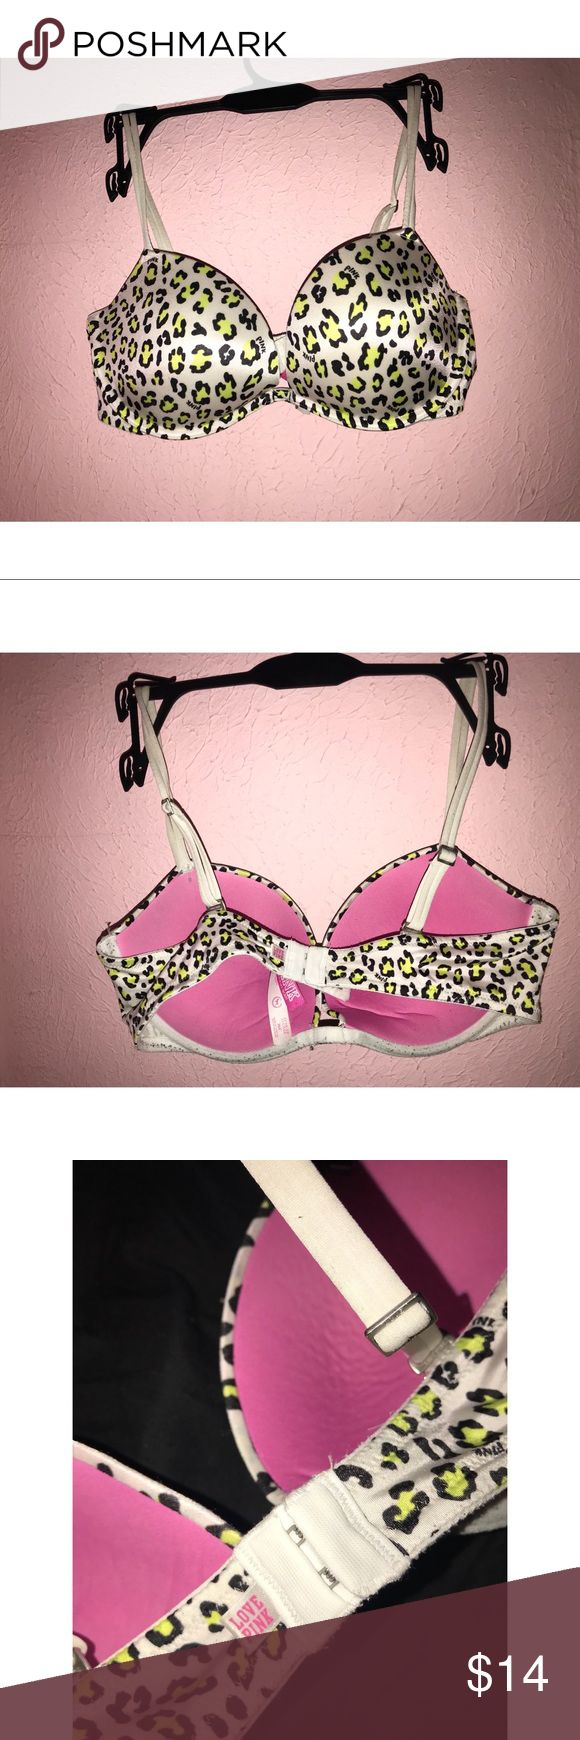 PINK VS leopard bra Pink by Victoria's Secret. Neon green and black leopard print. Size 36C. Only flaw is some pilling along the underwire on the bottom of the cups, not noticeable while wearing. PINK Victoria's Secret Intimates & Sleepwear Bras